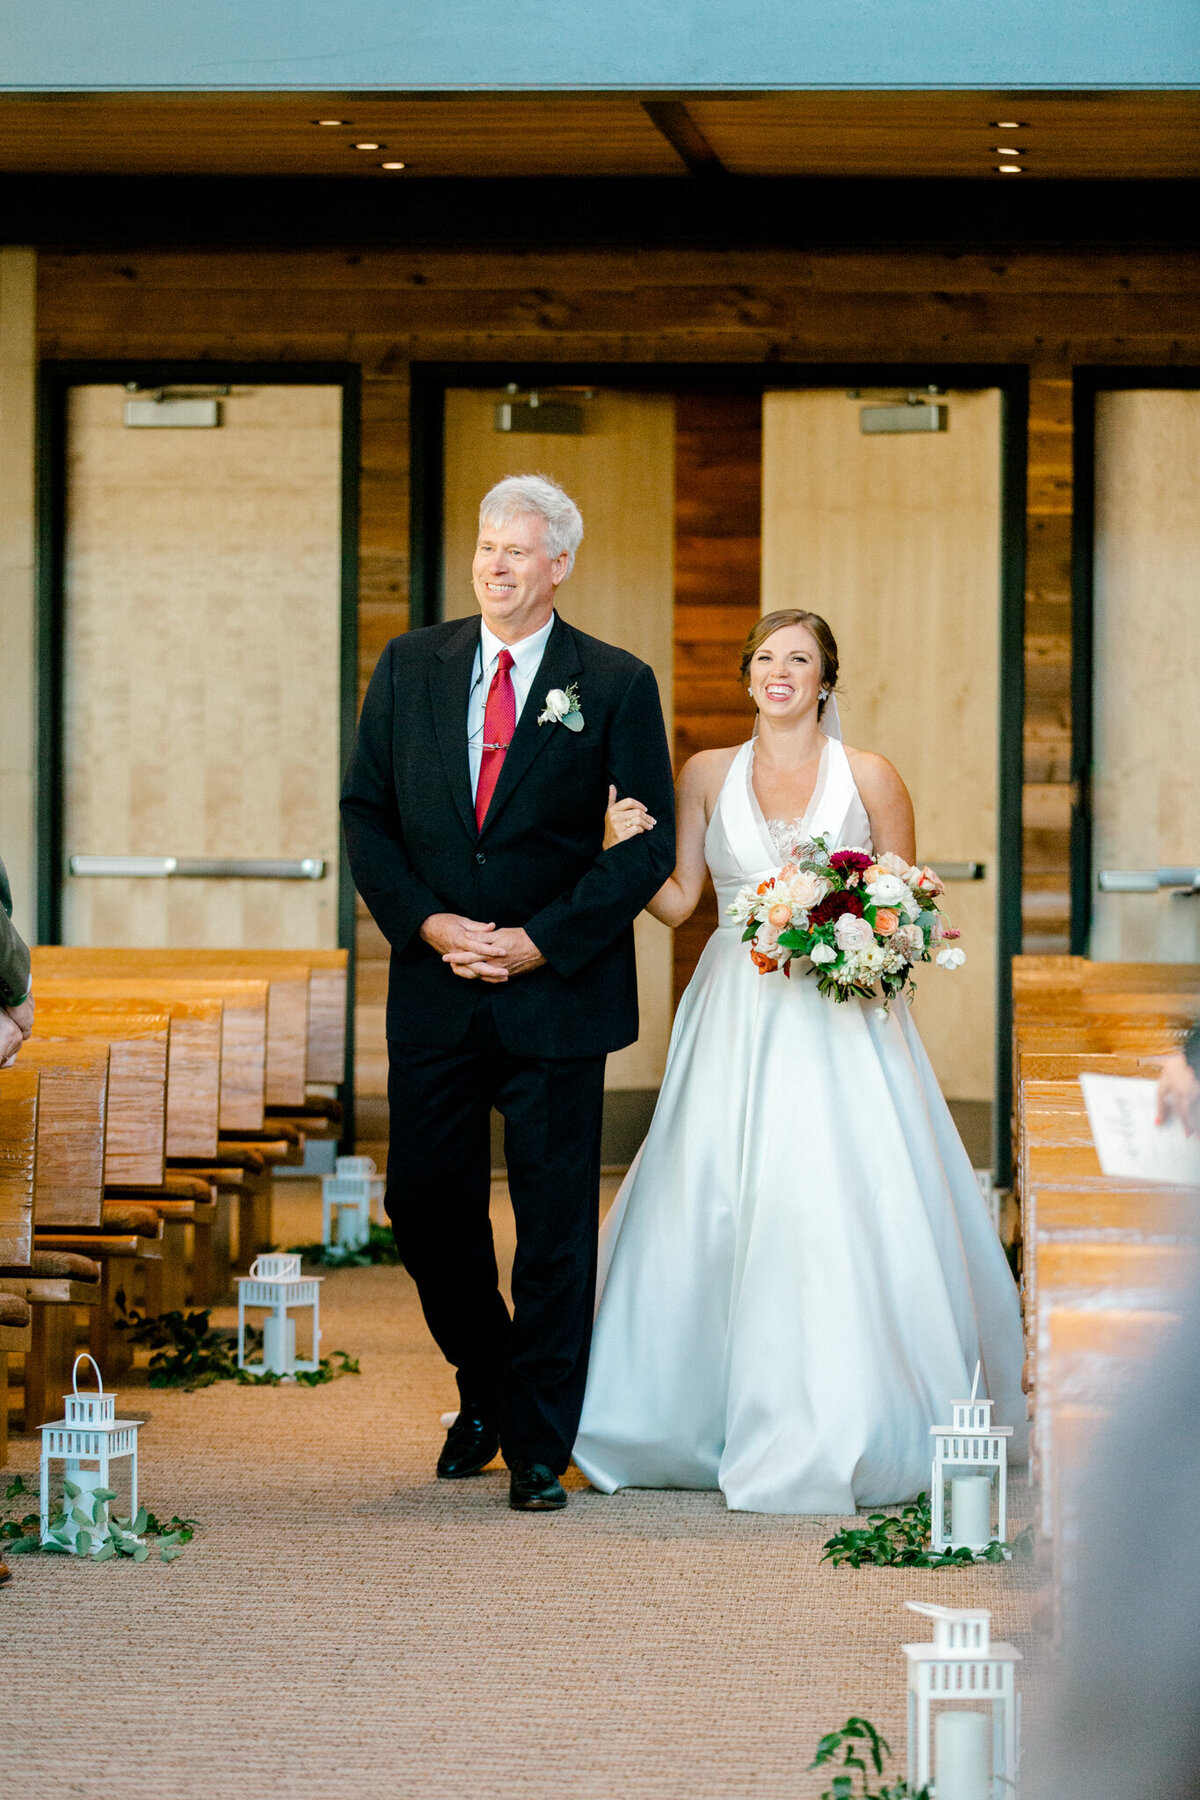 Kaylee & Michael's Wedding at Watermark Community Church | Dallas Wedding Photographer | Sami Kathryn Photography-104